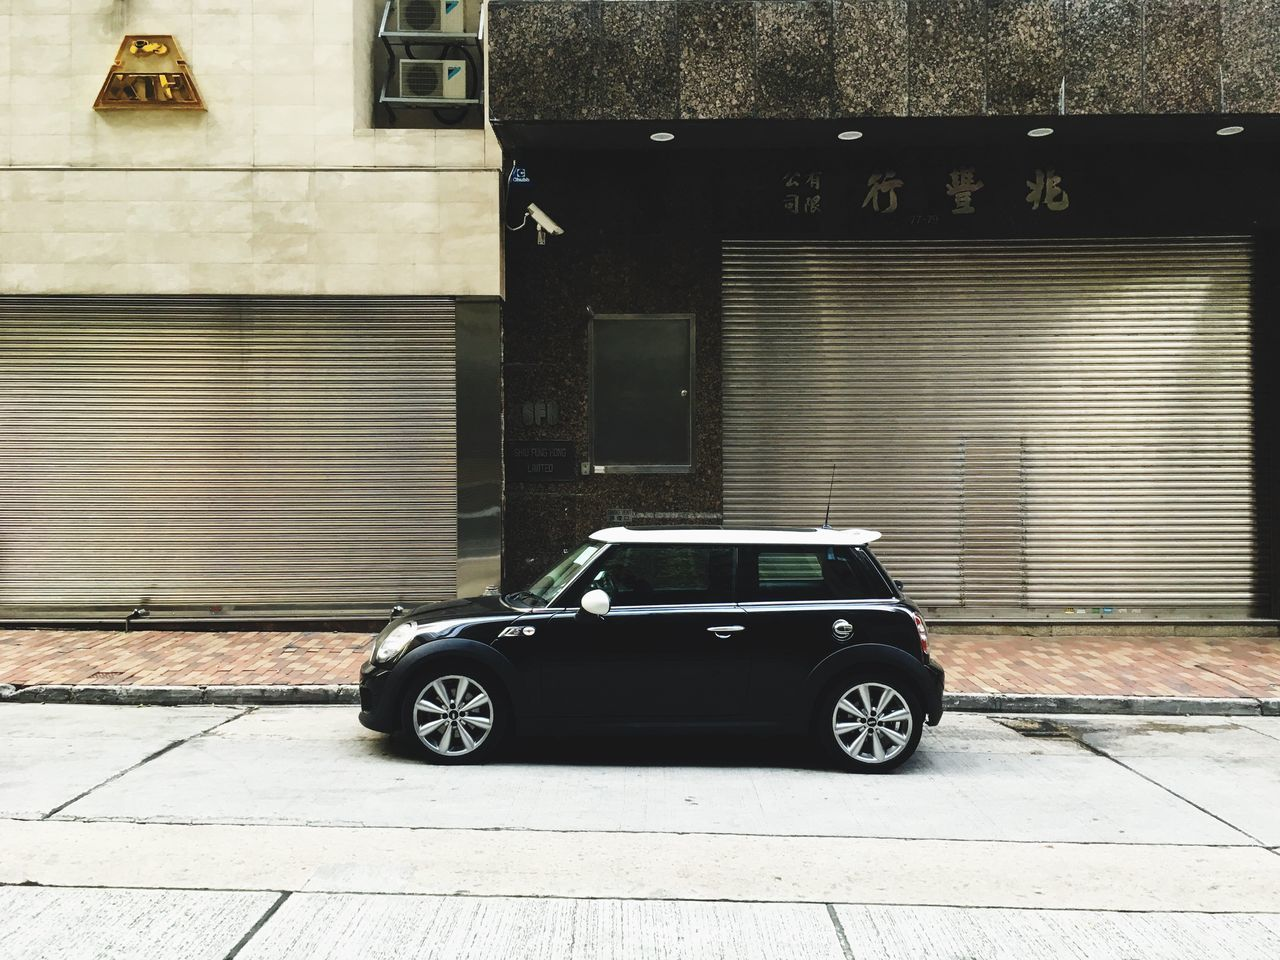 Shutter Building Exterior Built Structure Architecture Outdoors No People Car Day Mini Mini Cooper Car The City Light